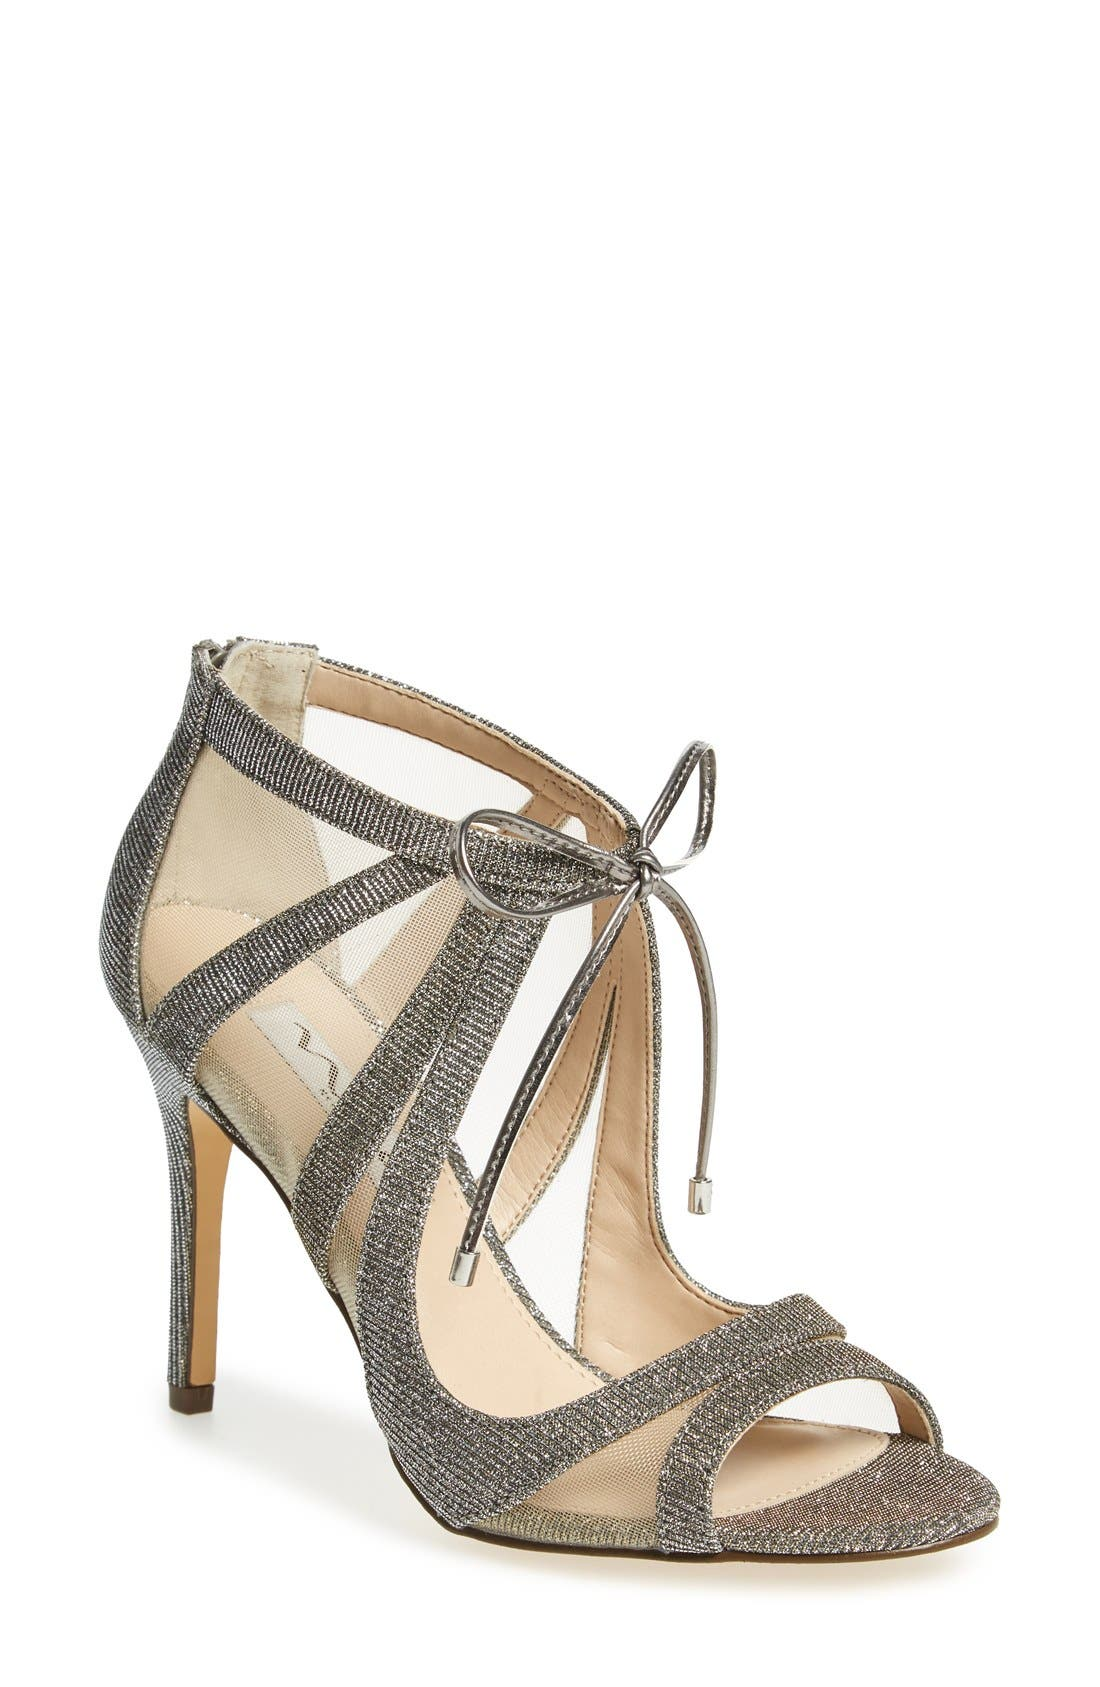 Nina Cherie Illusion Sandal, Metallic